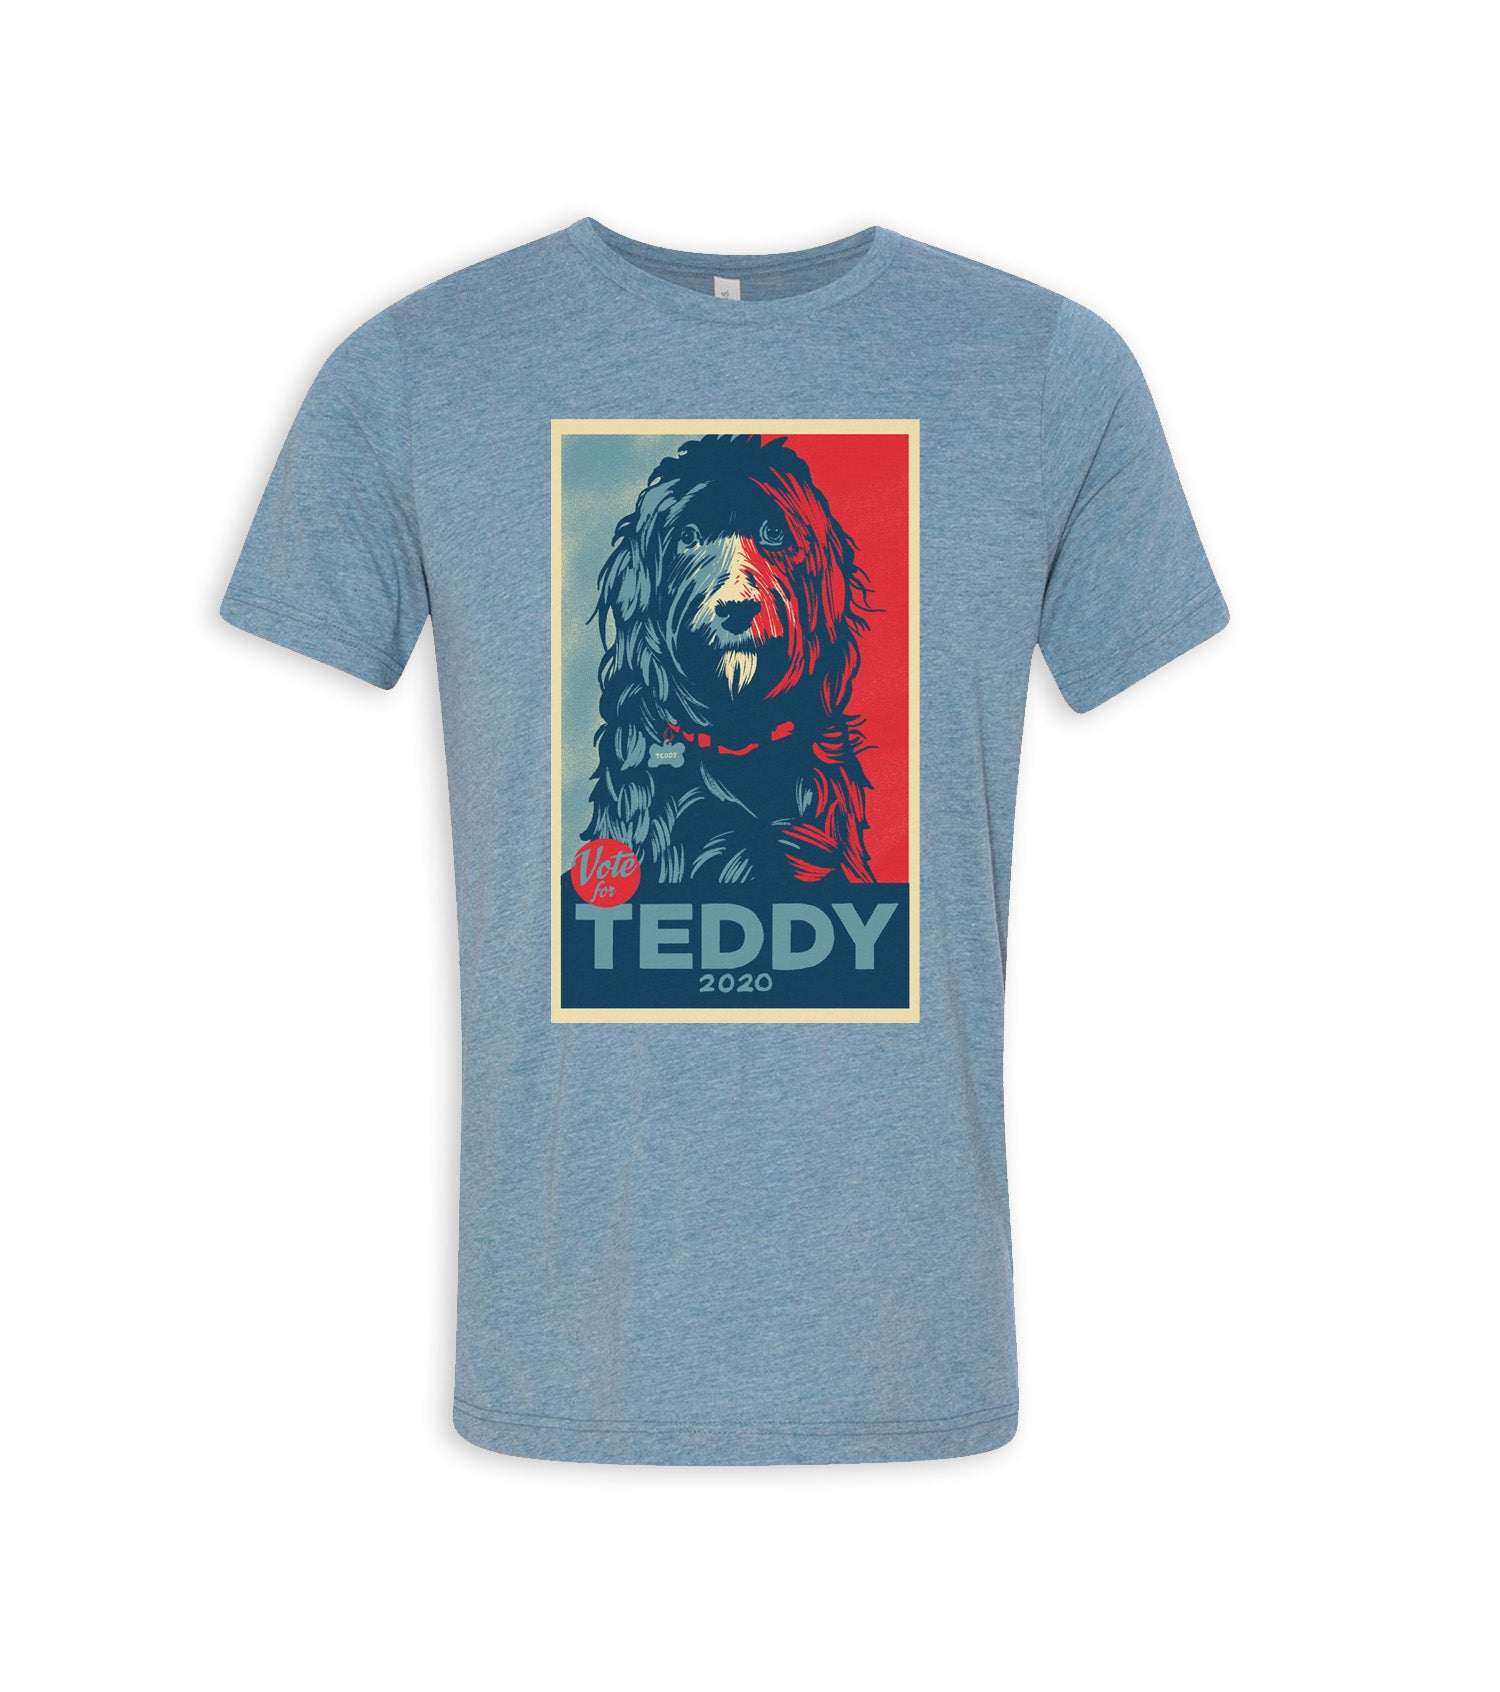 Teddy 2020 T-shirt